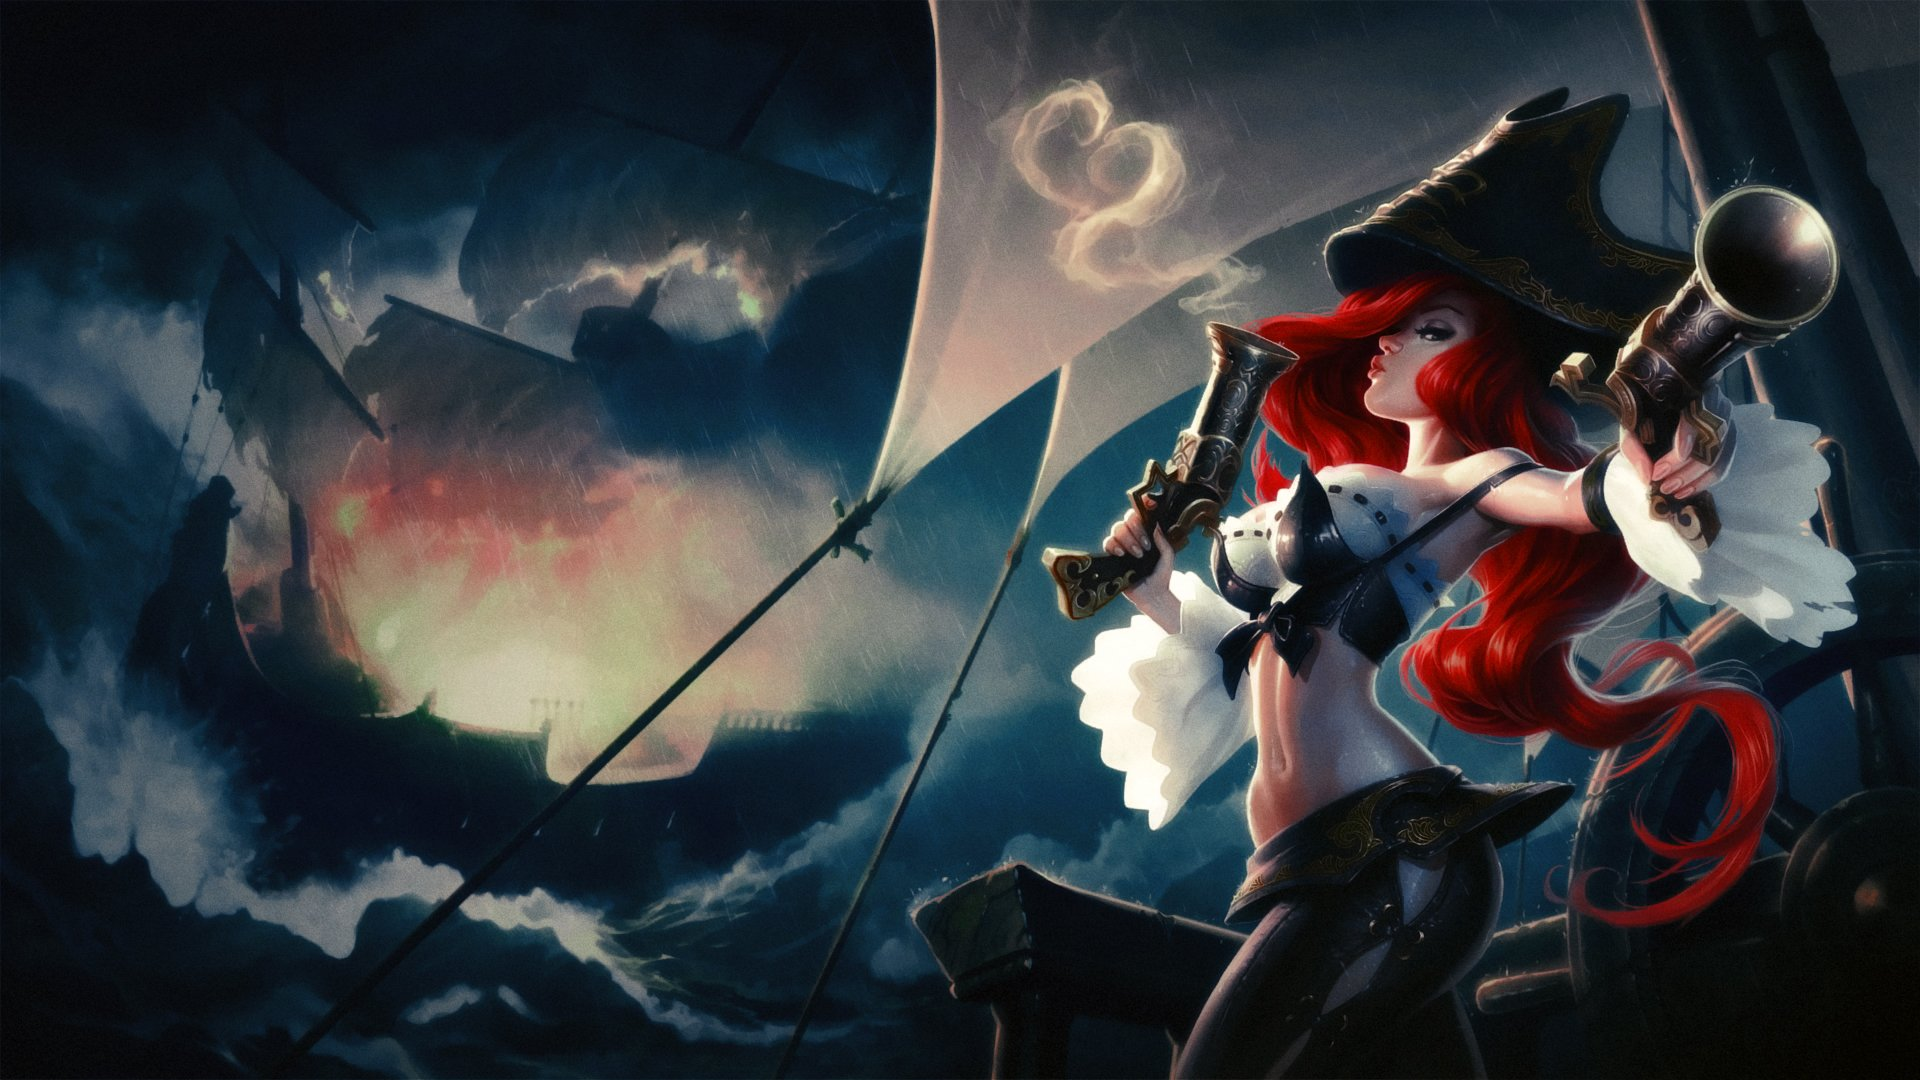 Blue, classic, cloudy, Fortune, legends, lol, miss, pirate, red, Sea, storm, game, games, graphics wallpaper